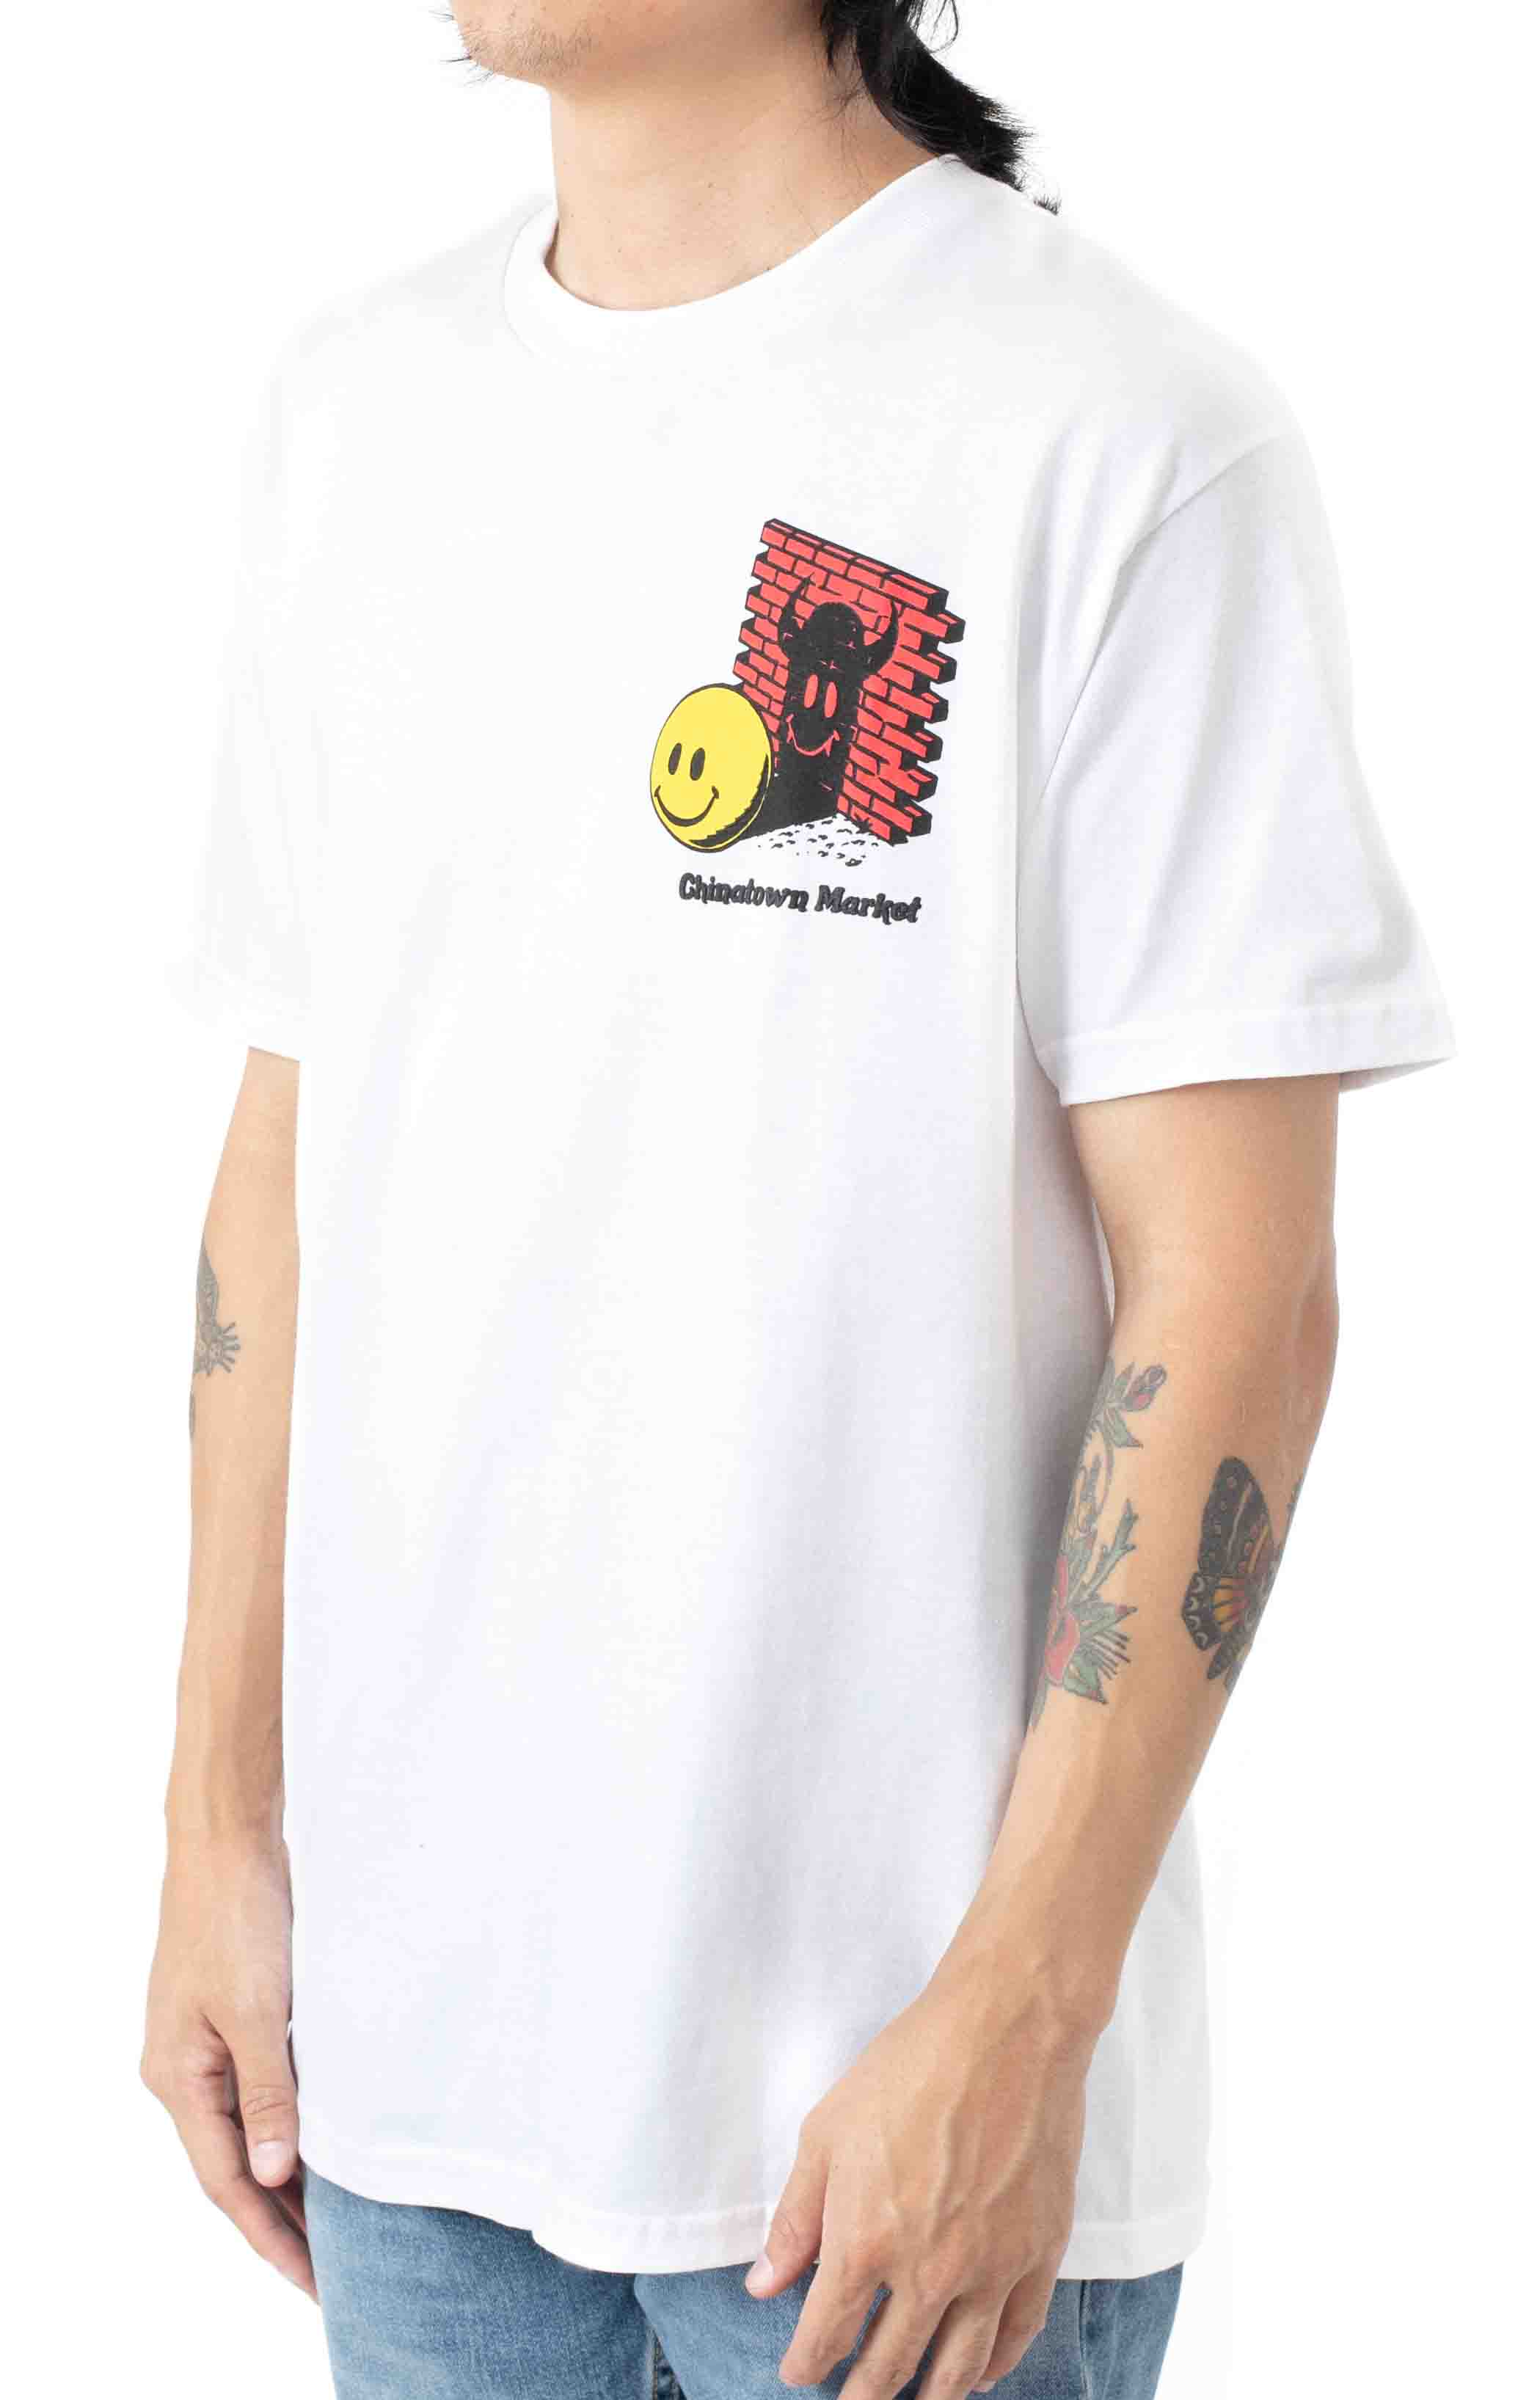 Smiley Find the Light T-Shirt - White  3